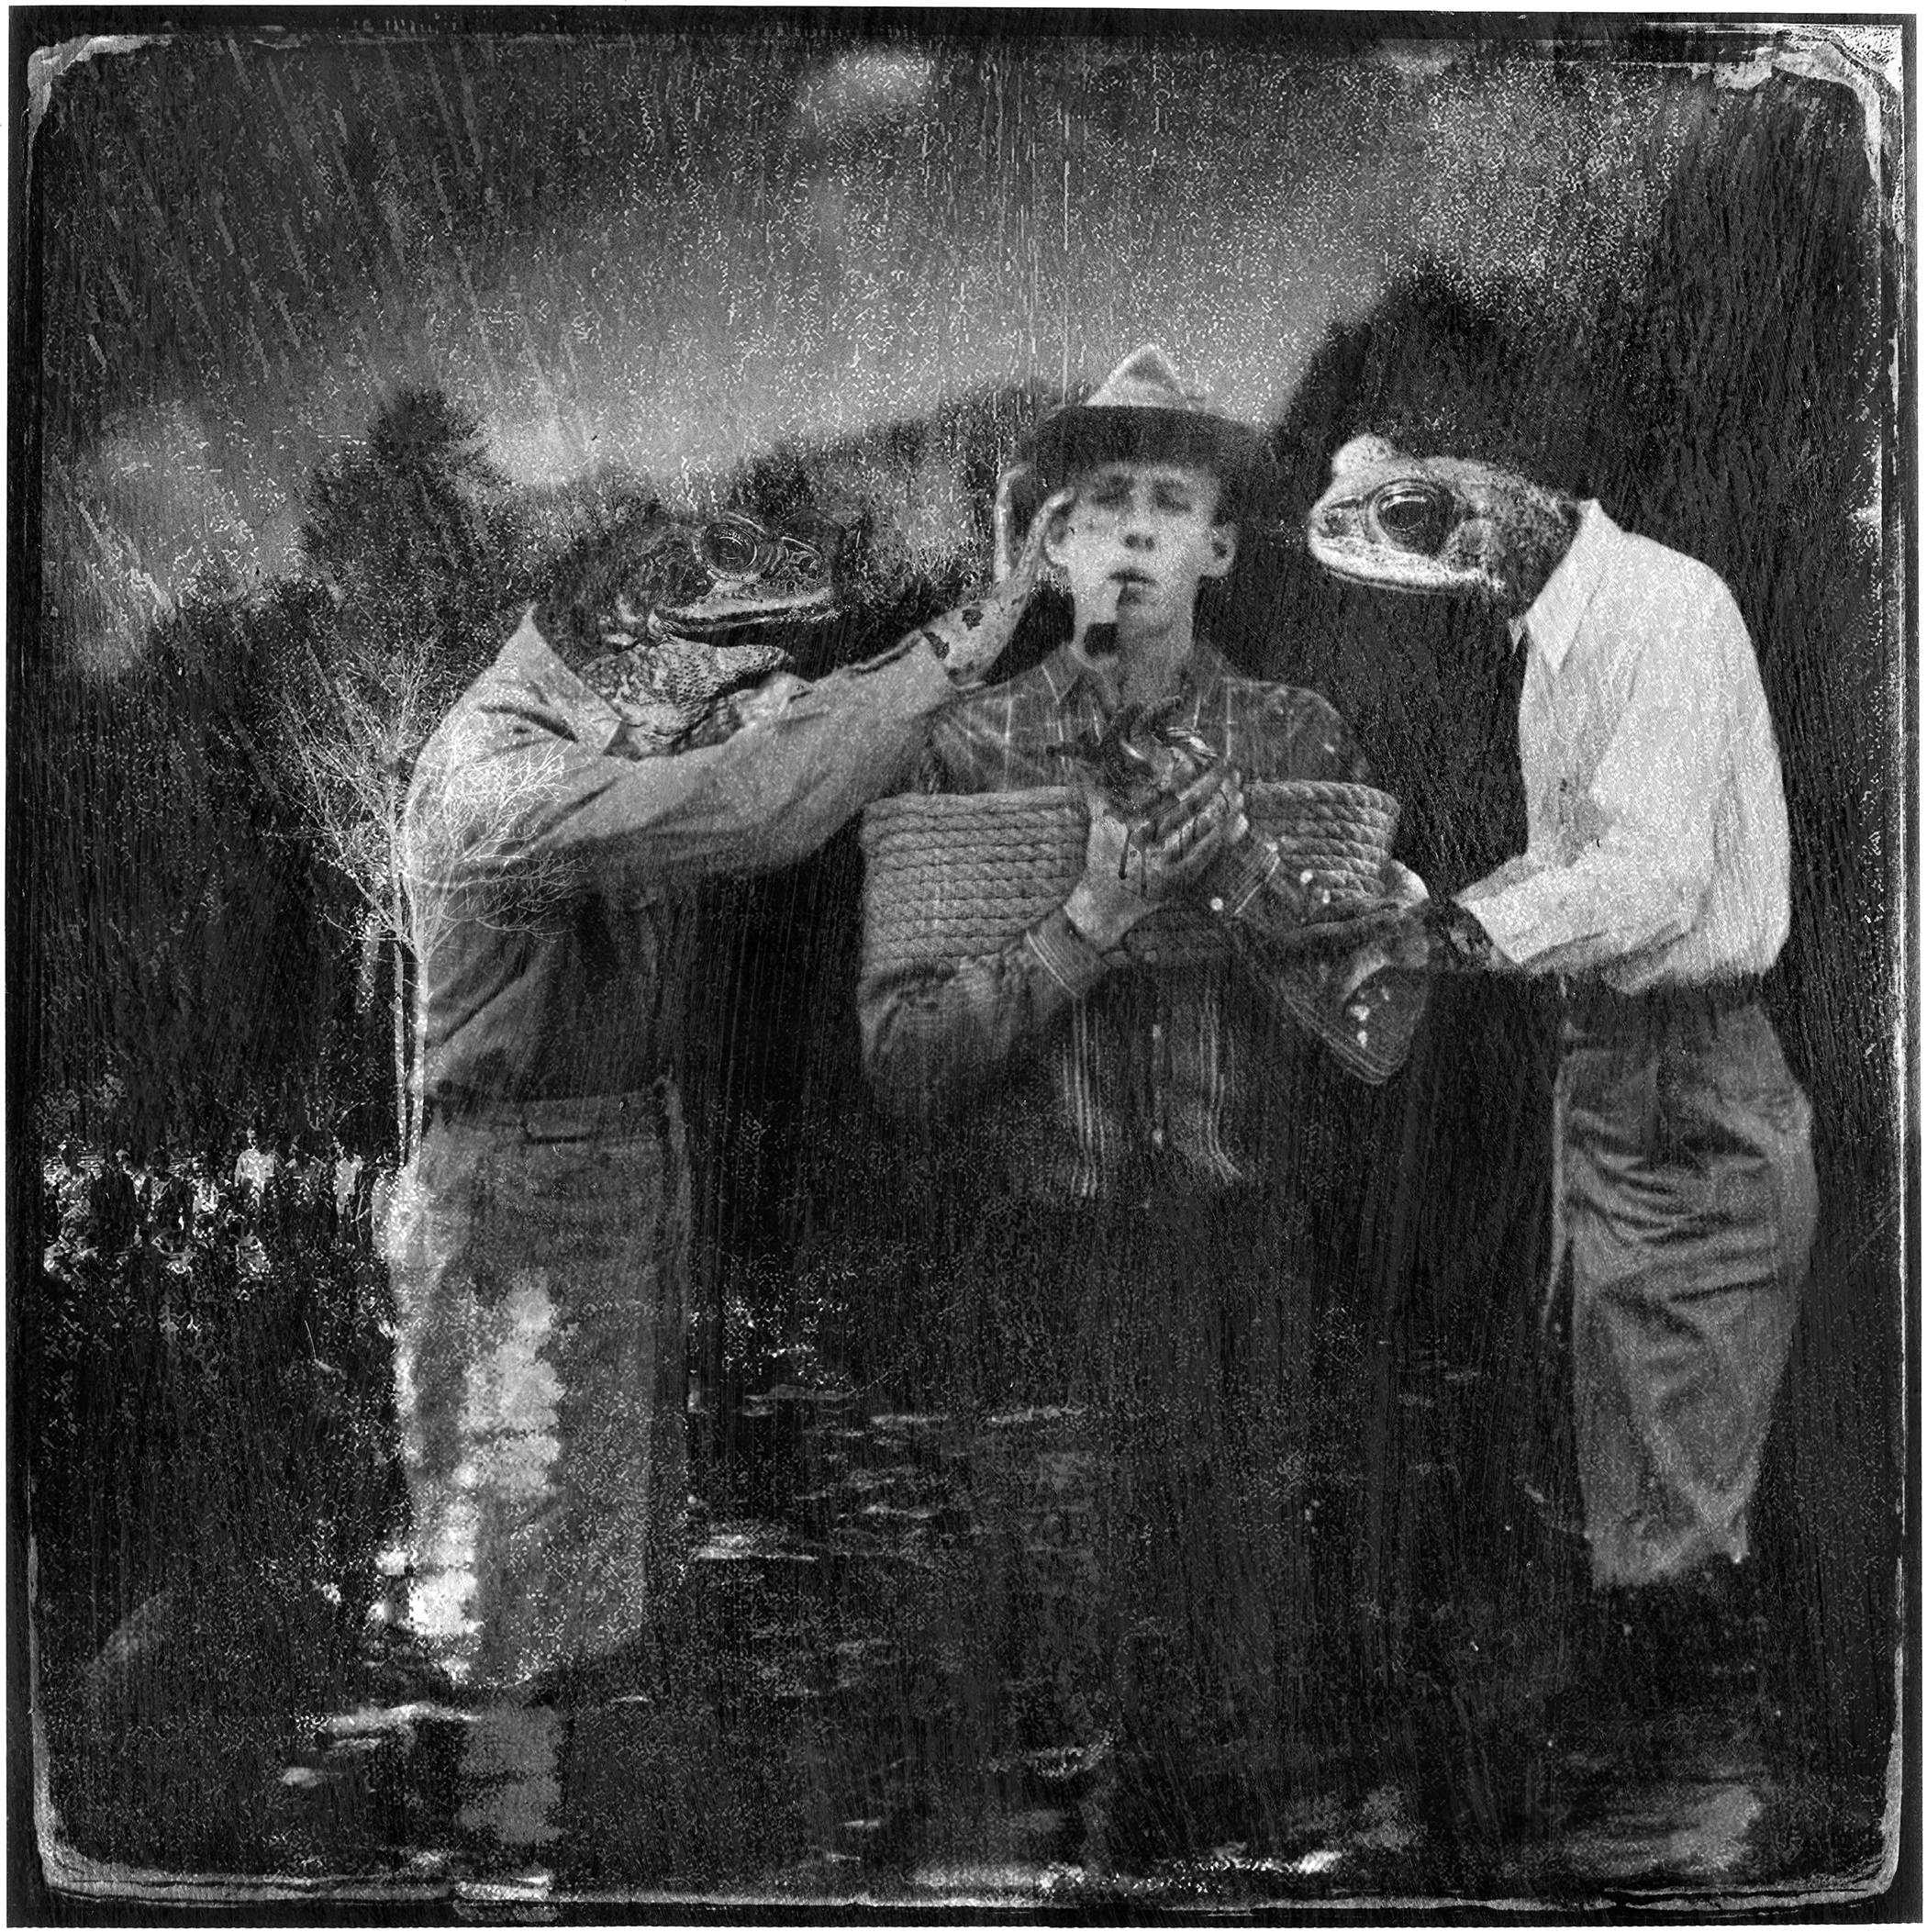 Great Uncle Ham's Final Baptism by the Frogs, 2017